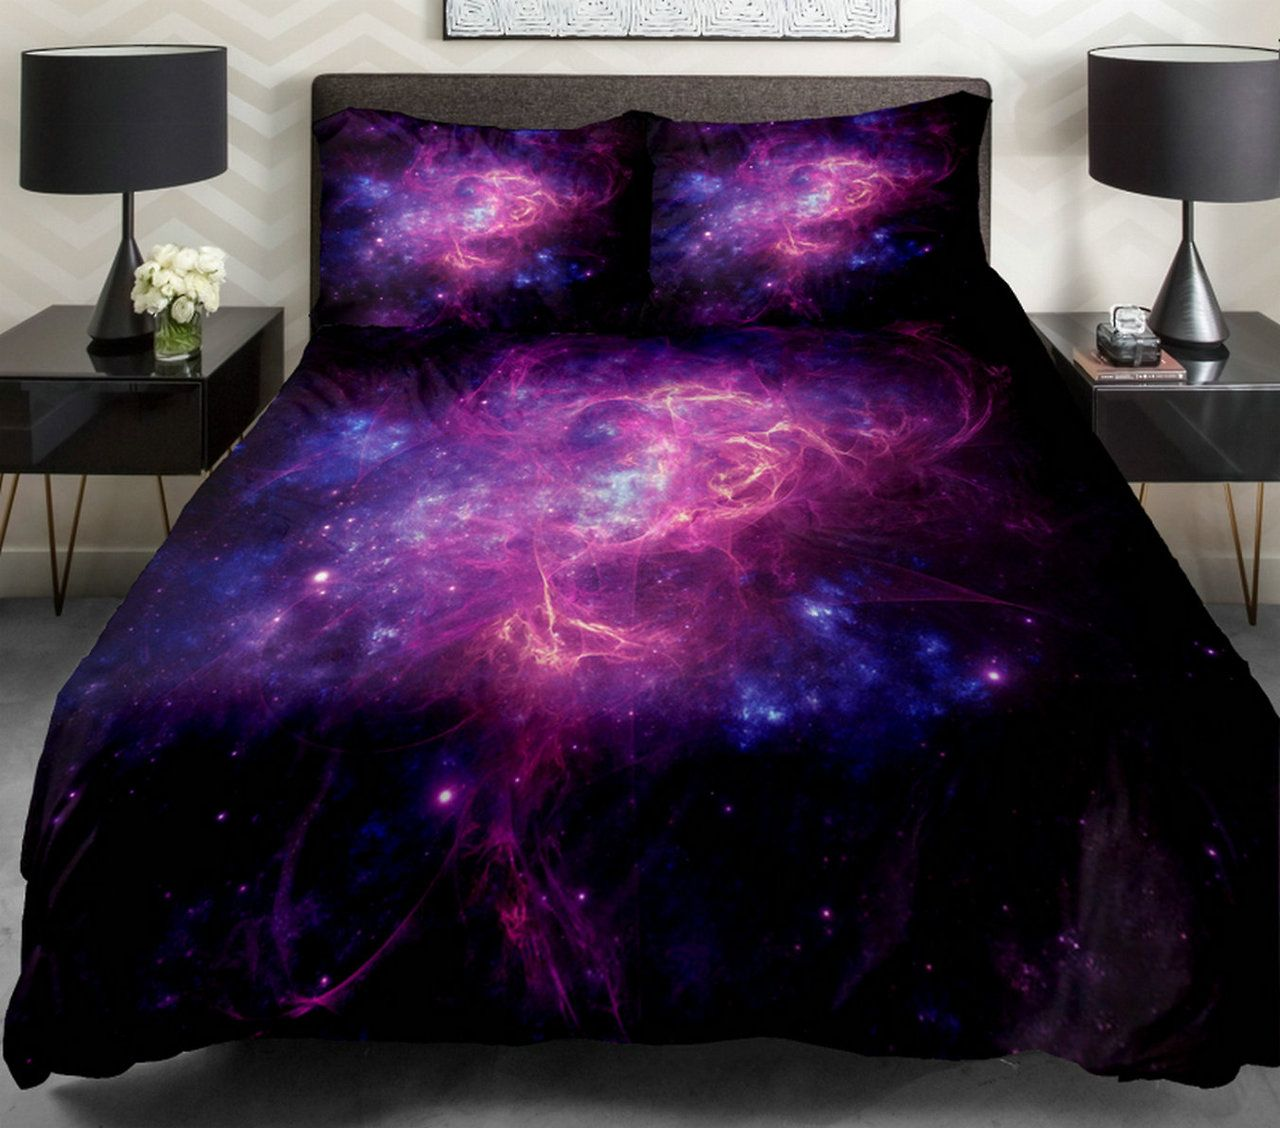 Imagine Create Repeat Check Out These Gorgeous Galaxy Bed Sets